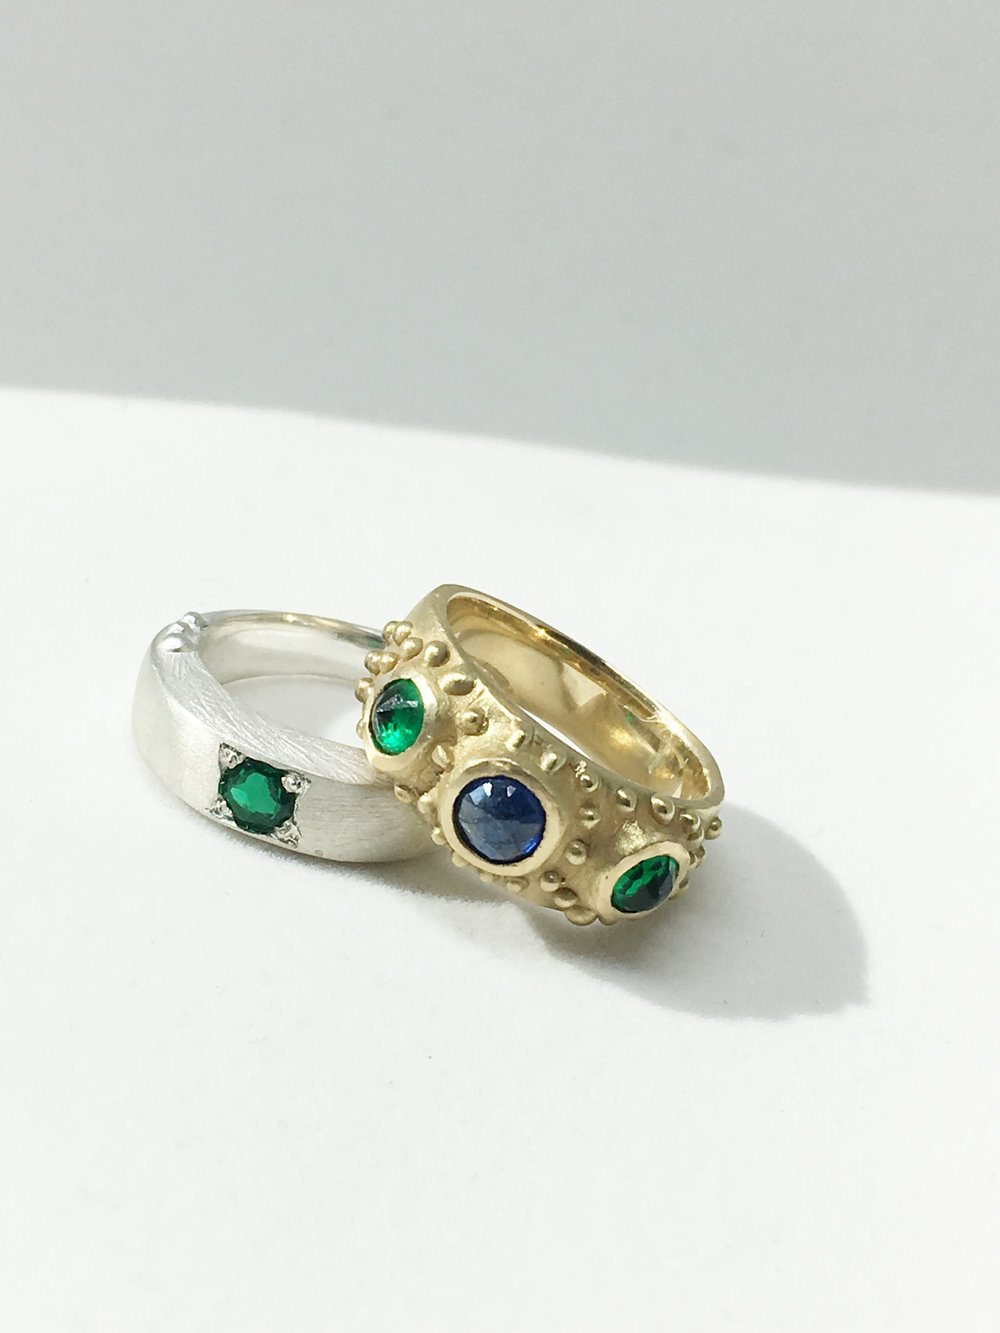 KISHORI Rings - Sterling Silver + 18k yellow gold rings with heirloom emeralds and sapphire